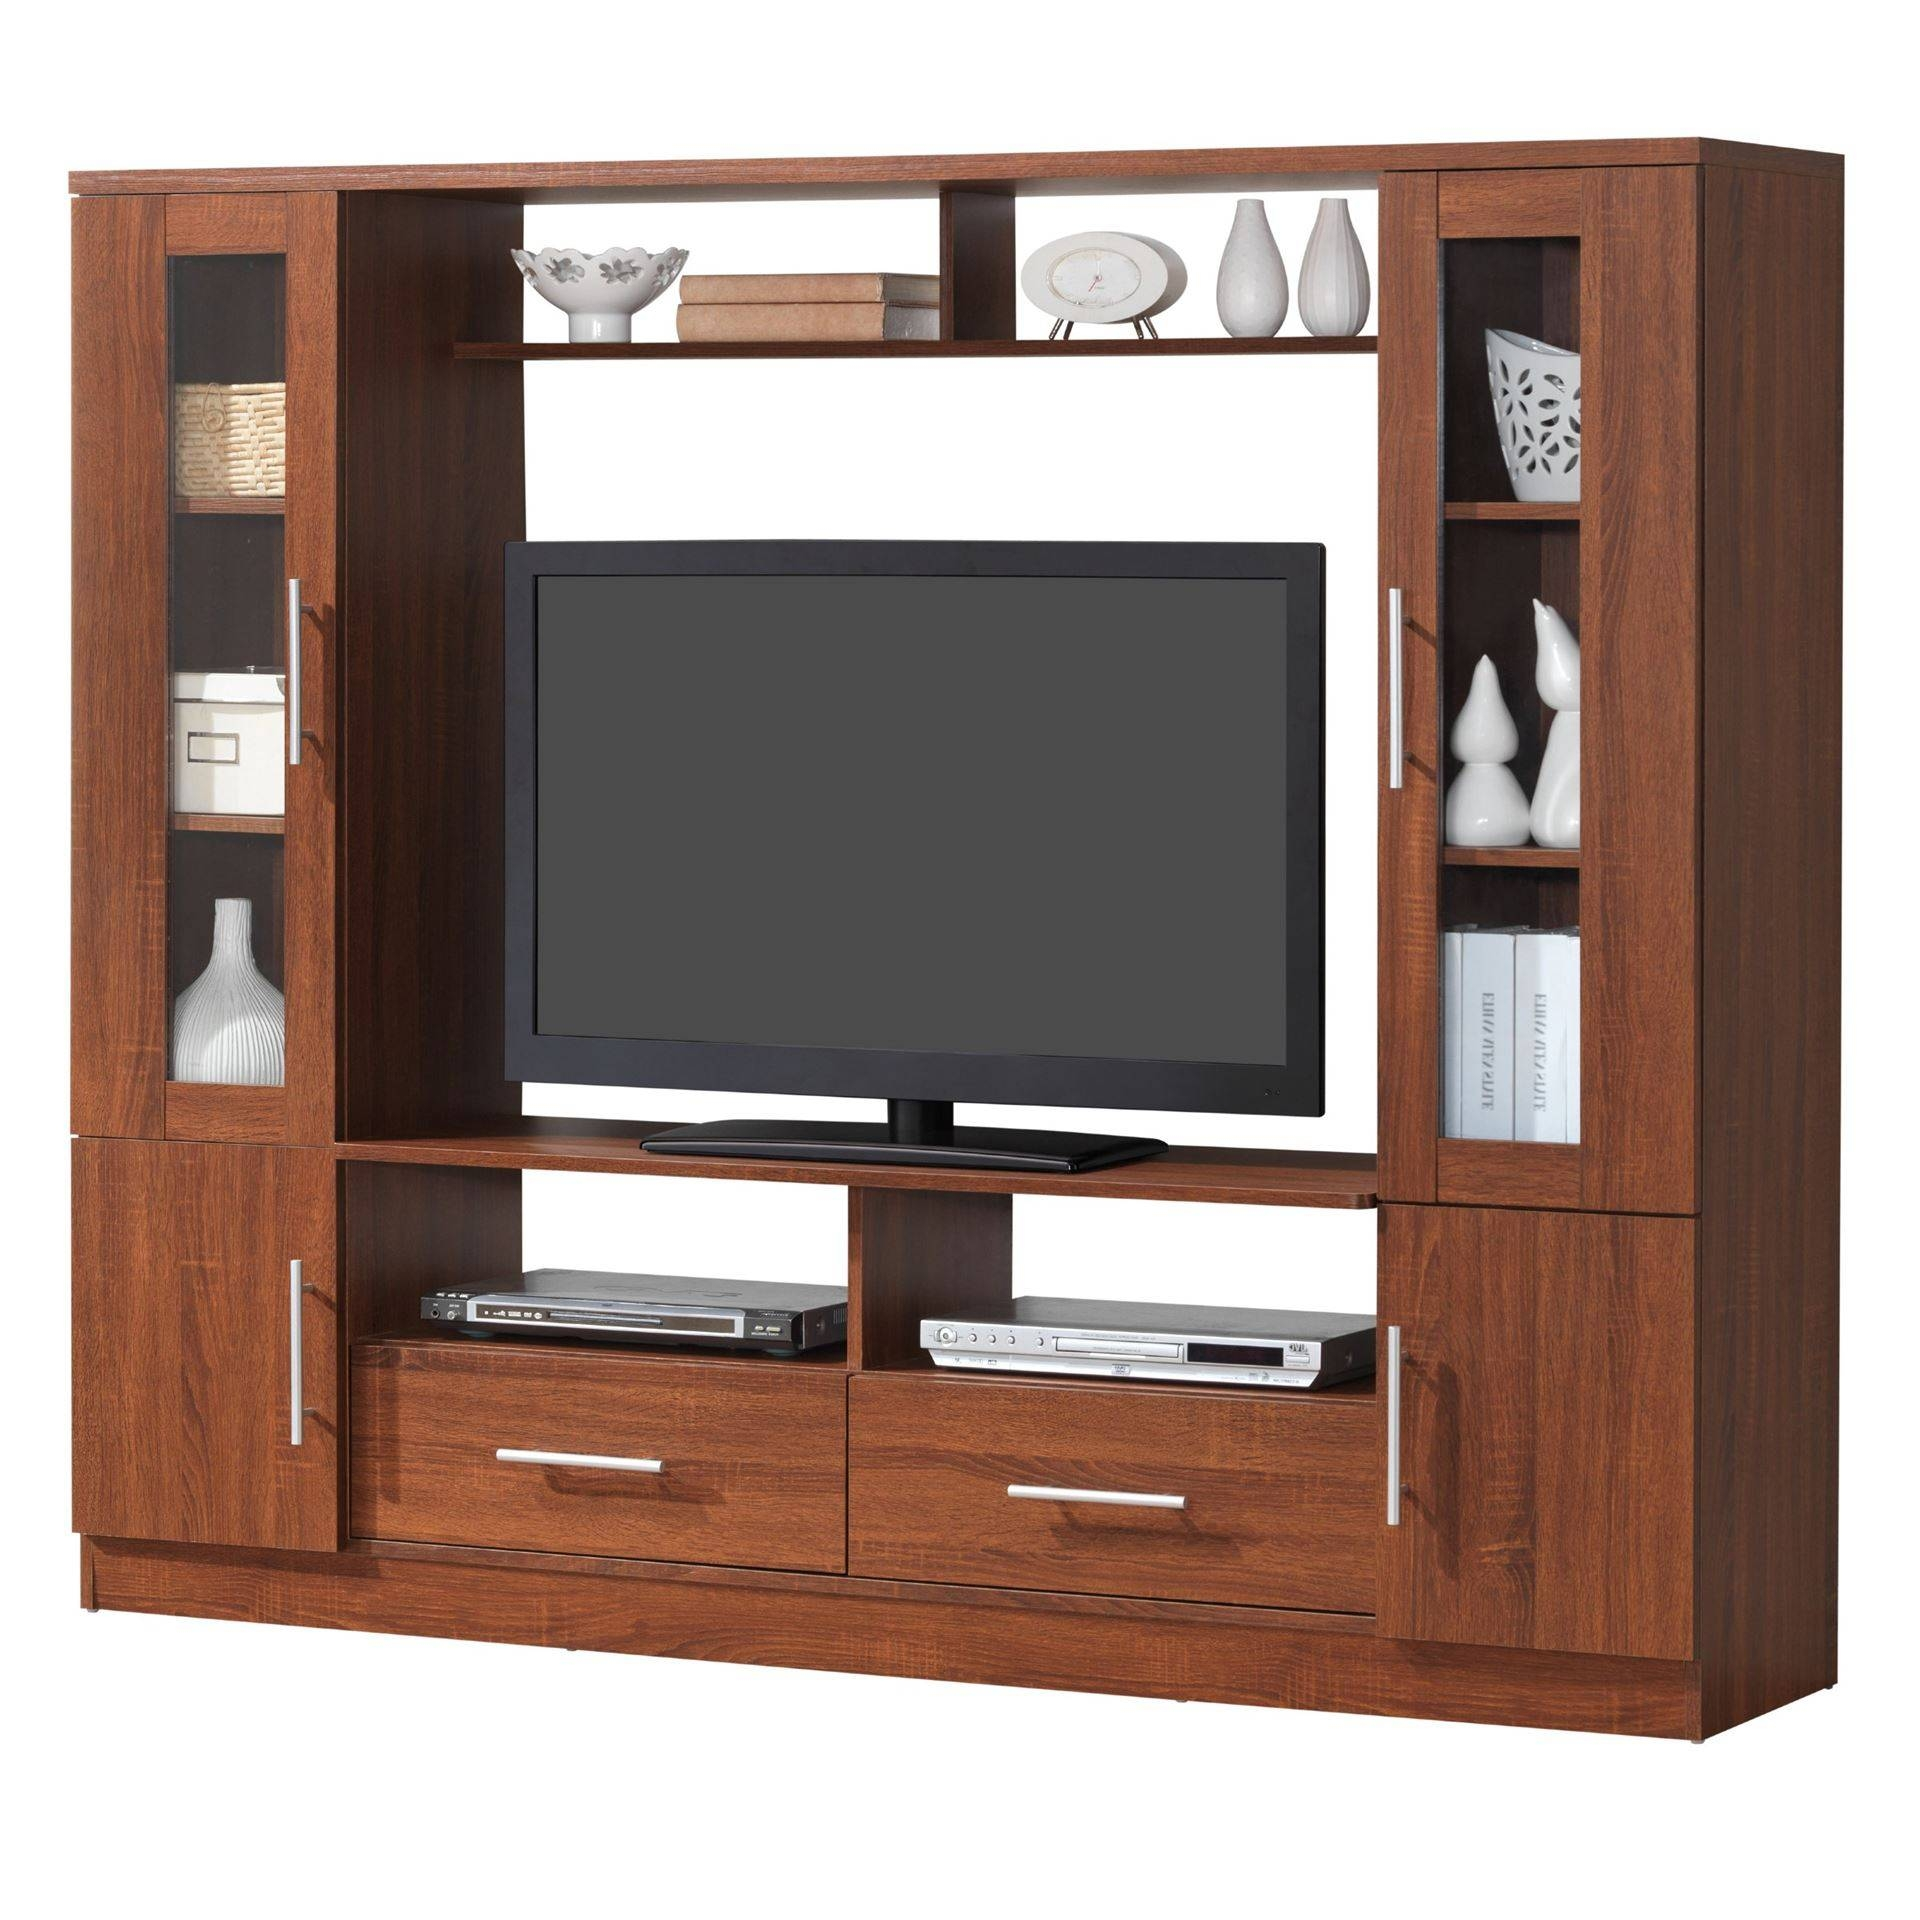 Classic Modern Tv Unit | Tv Stand Online. within Tv Table (Image 3 of 15)